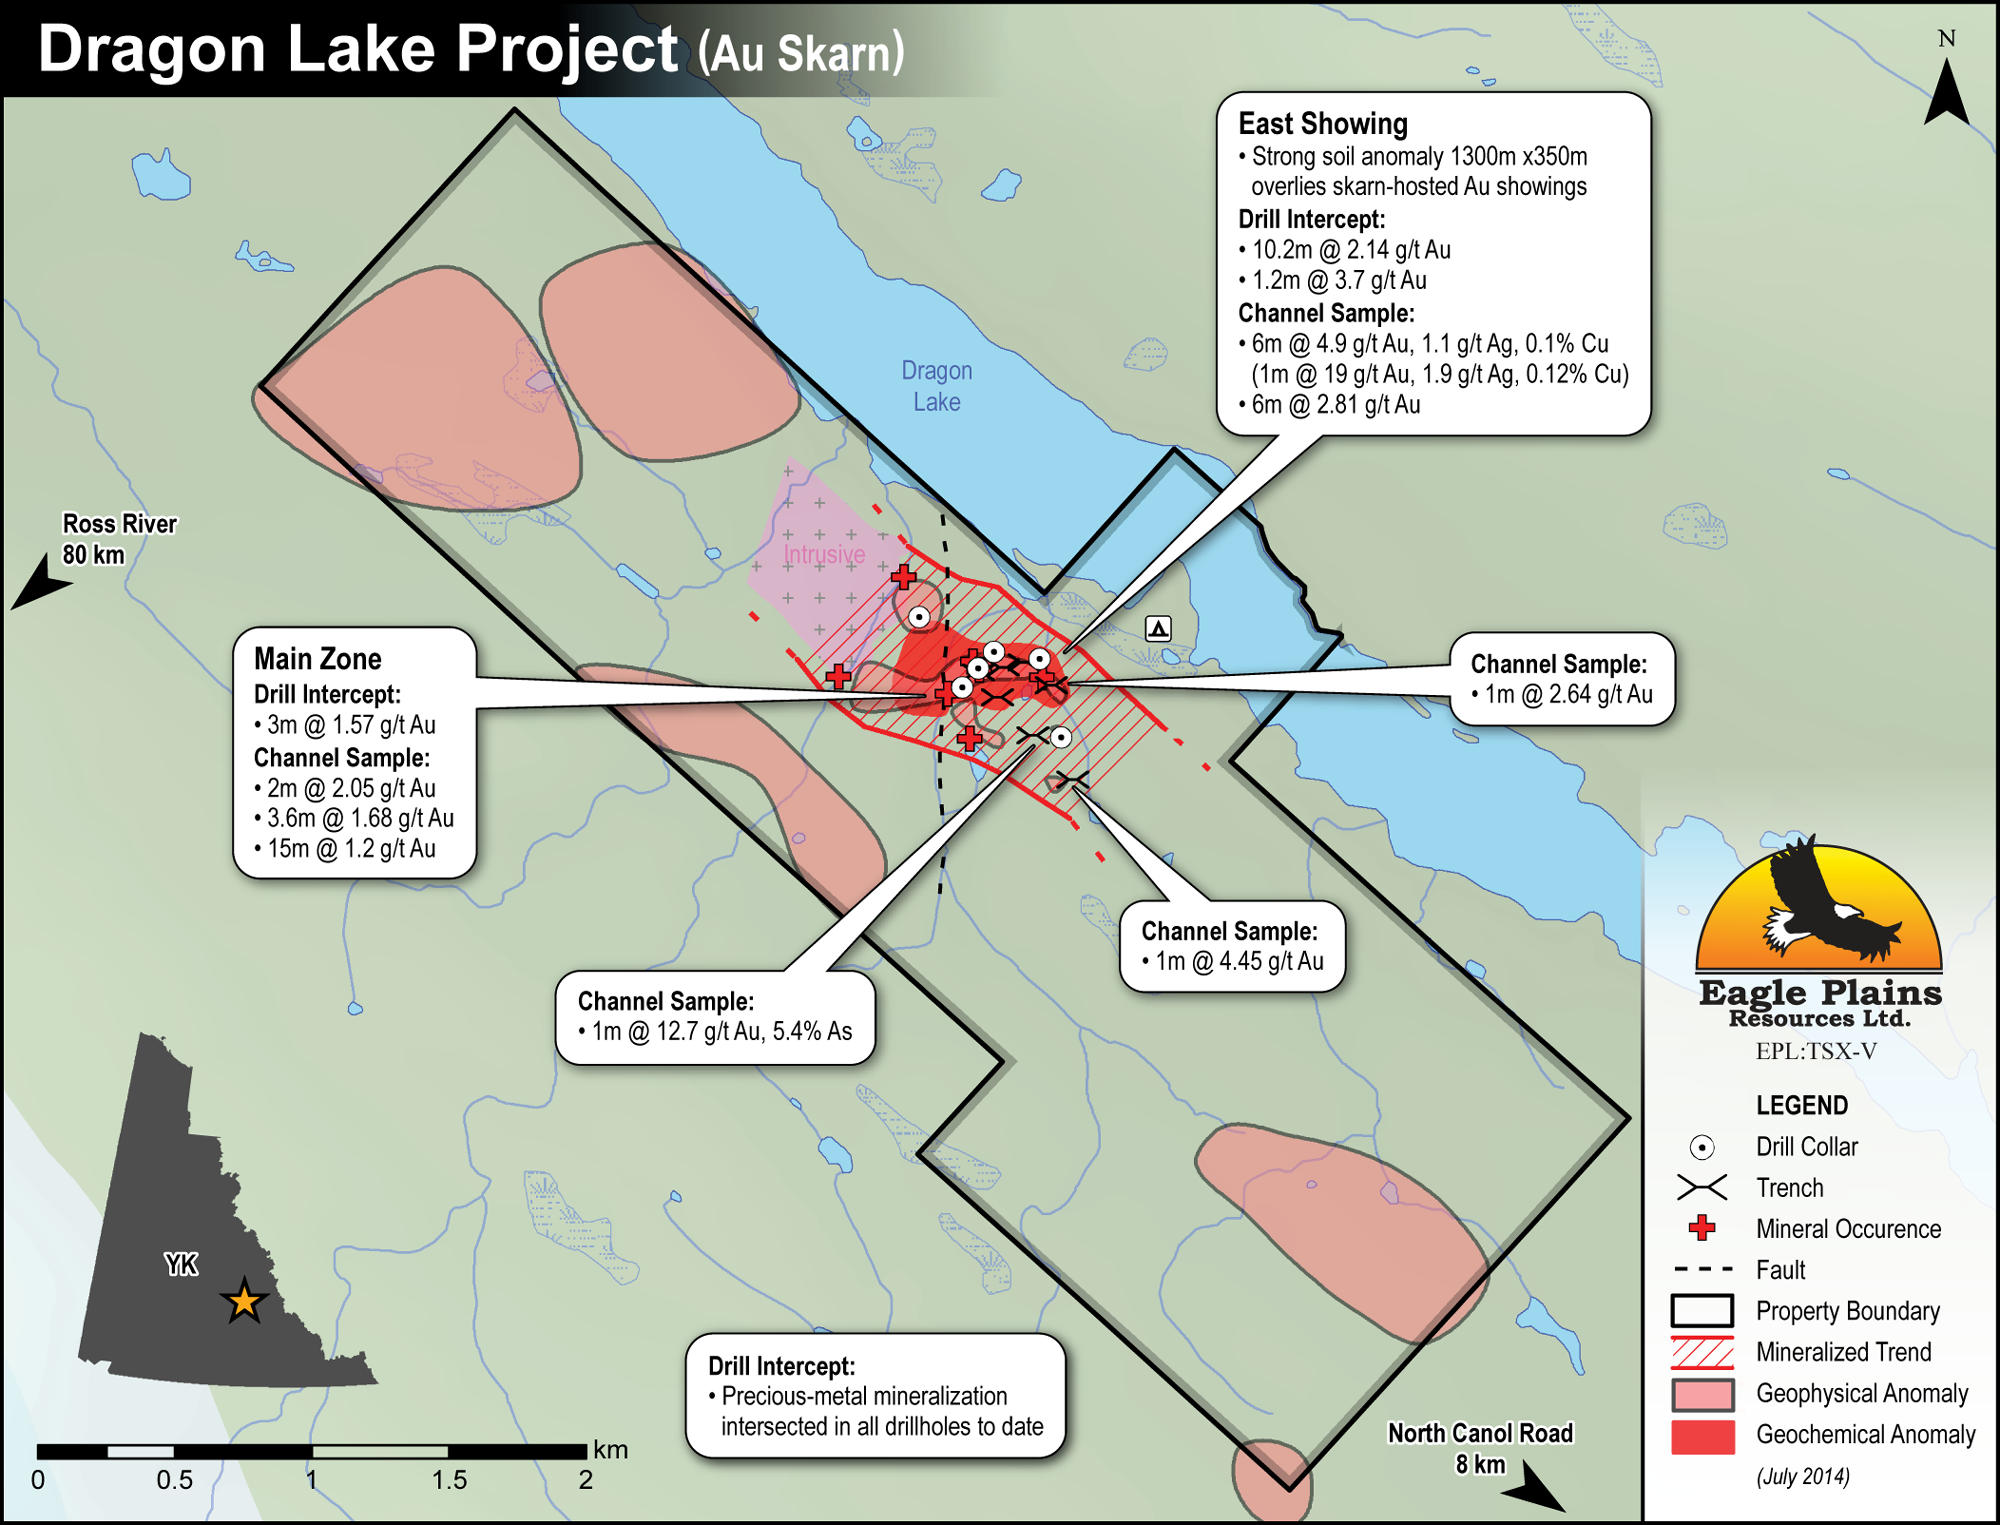 Eagle Plains Resources - Dragon Lake Project - Gold Skarn